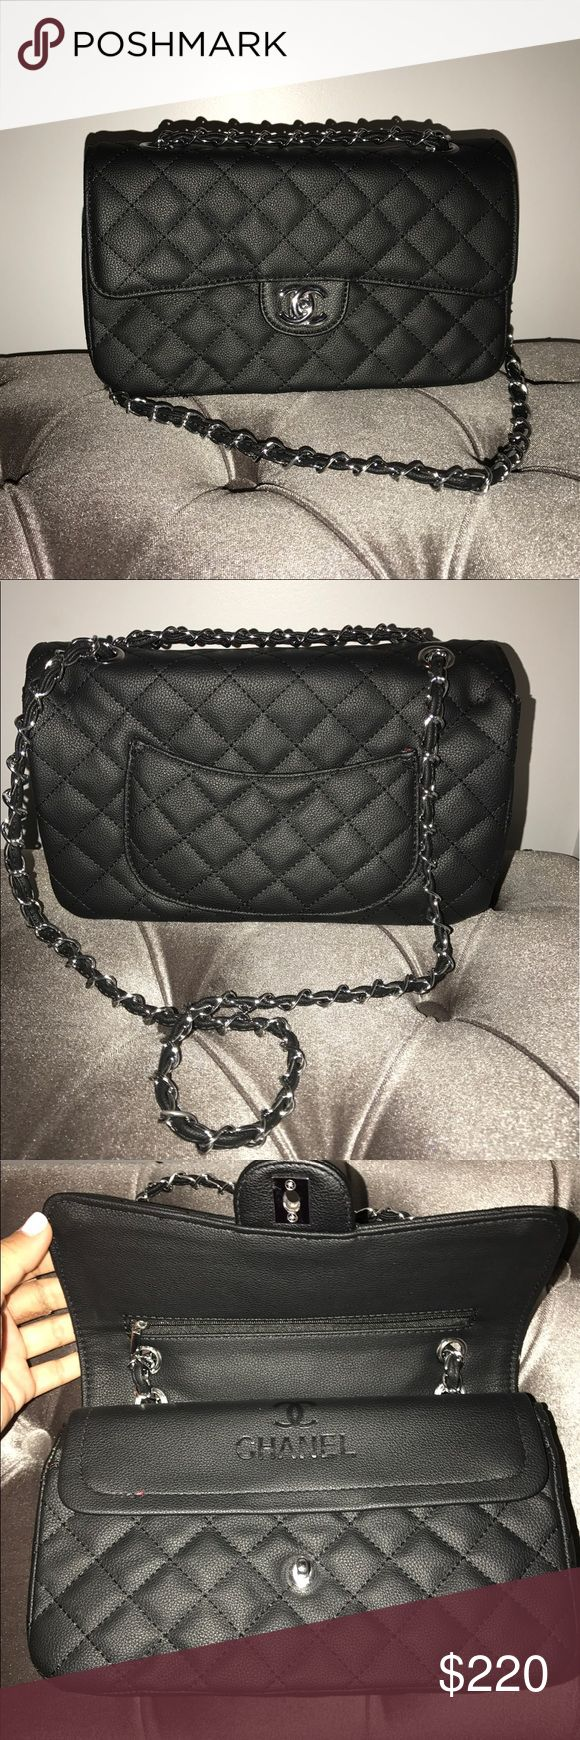 Flap bag hobo bag Comes in the color black. 100% Brand new. Never been used before. Faux leather material. Made in China. This is a size small. Louis Vuitton Bags Hobos